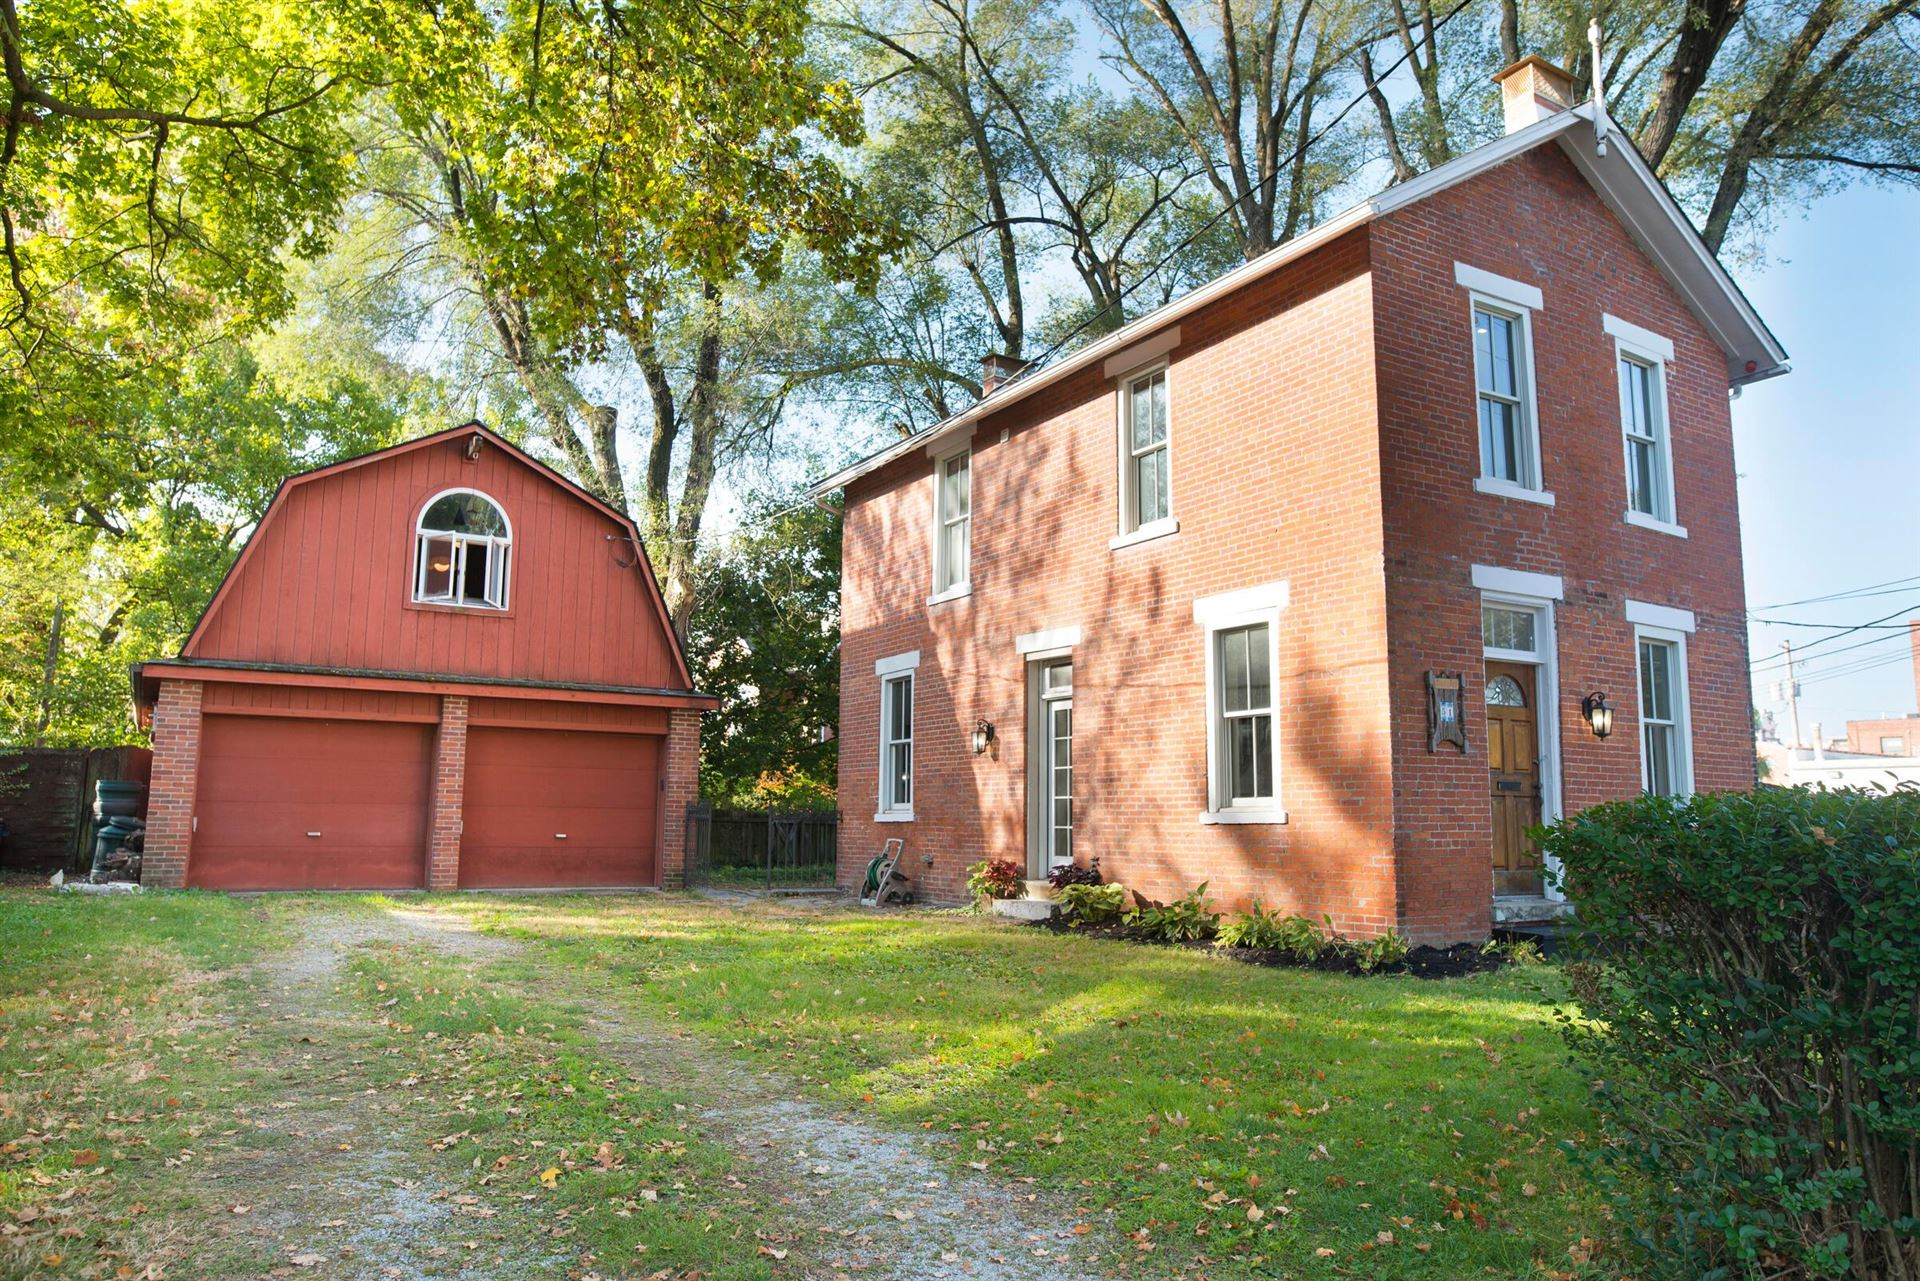 Photo of 51 E Main Street, Westerville, OH 43081 (MLS # 221040914)